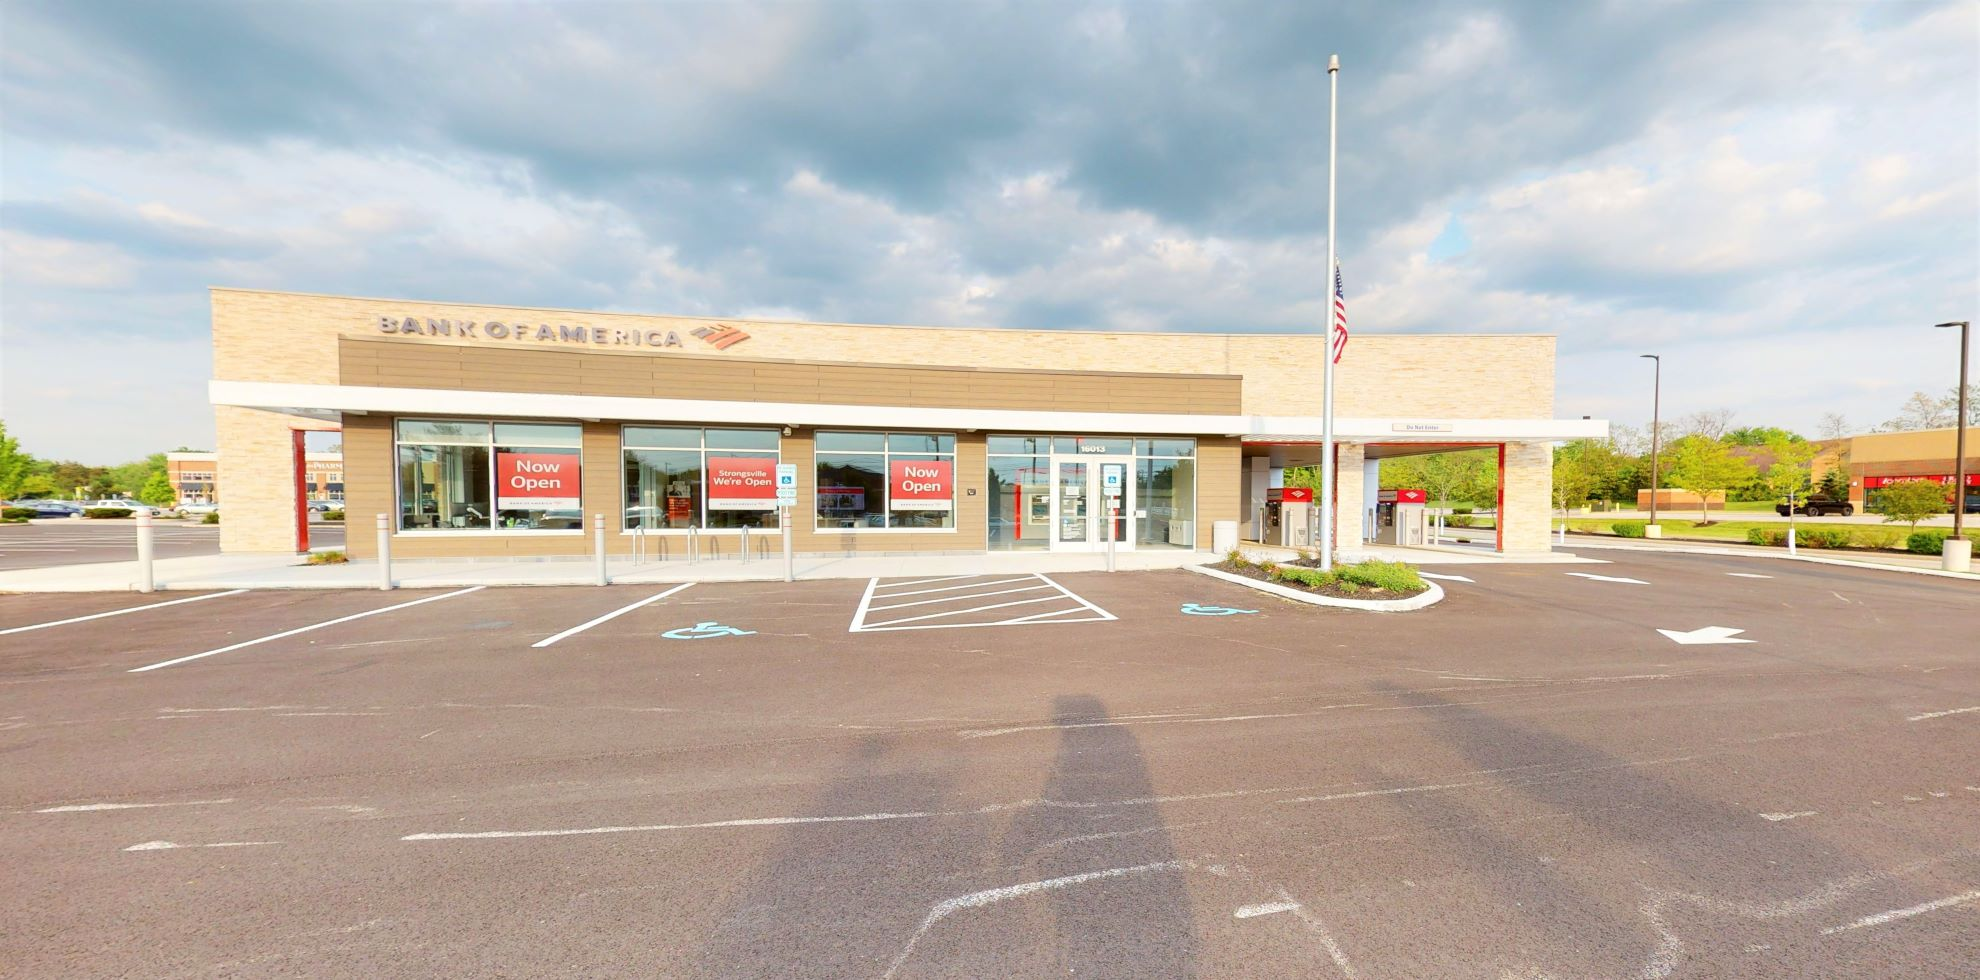 Bank of America financial center with drive-thru ATM   16013 Pearl Rd, Strongsville, OH 44136